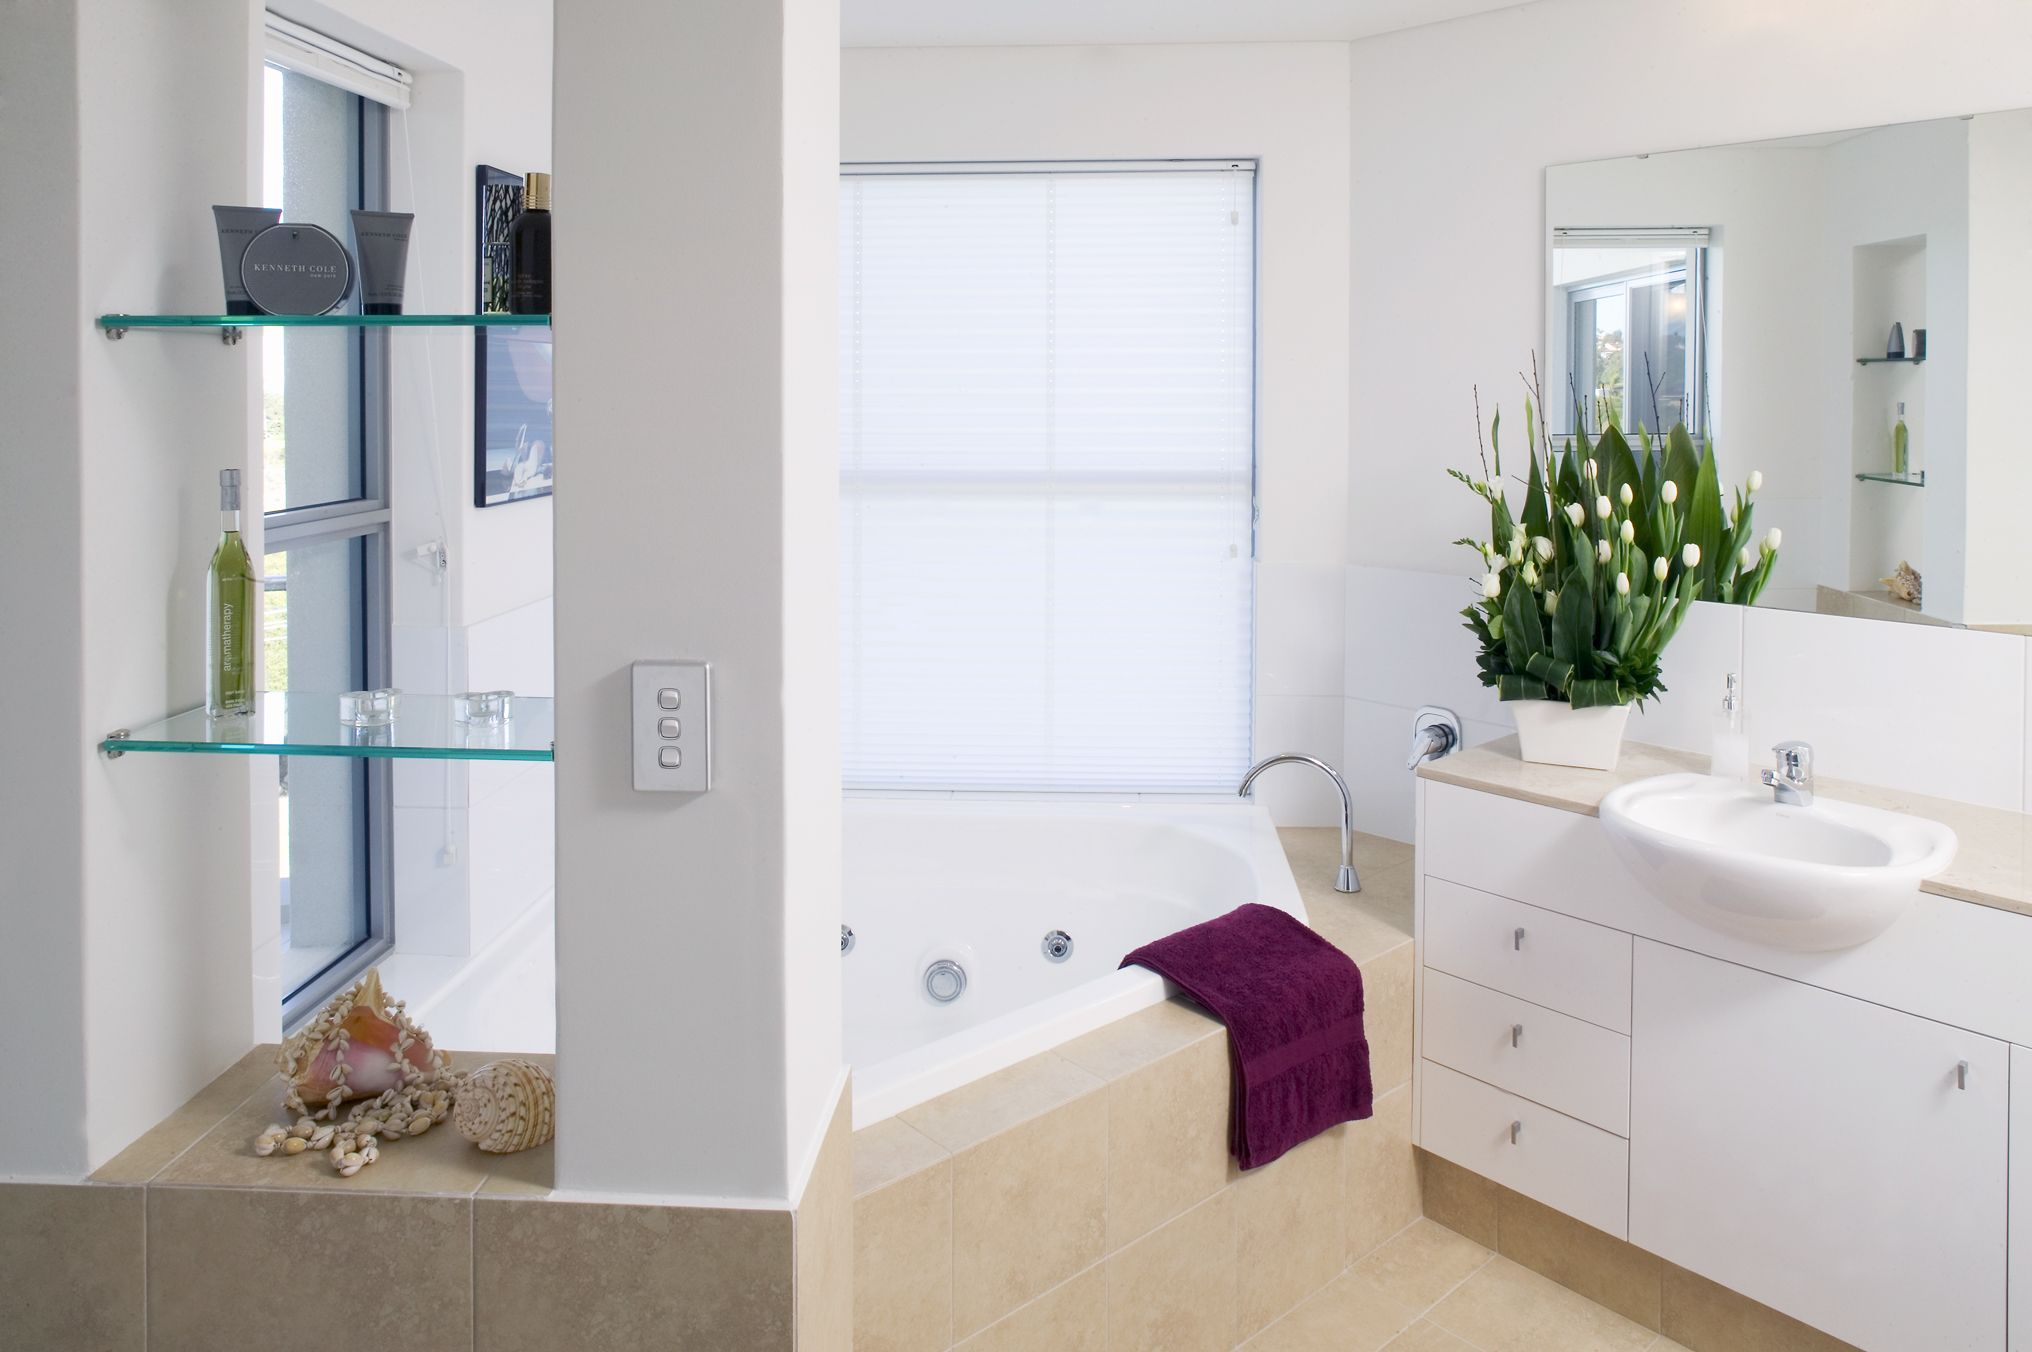 Clean and bright bathroom design. be inspired @ www.weststyle.com.au ...